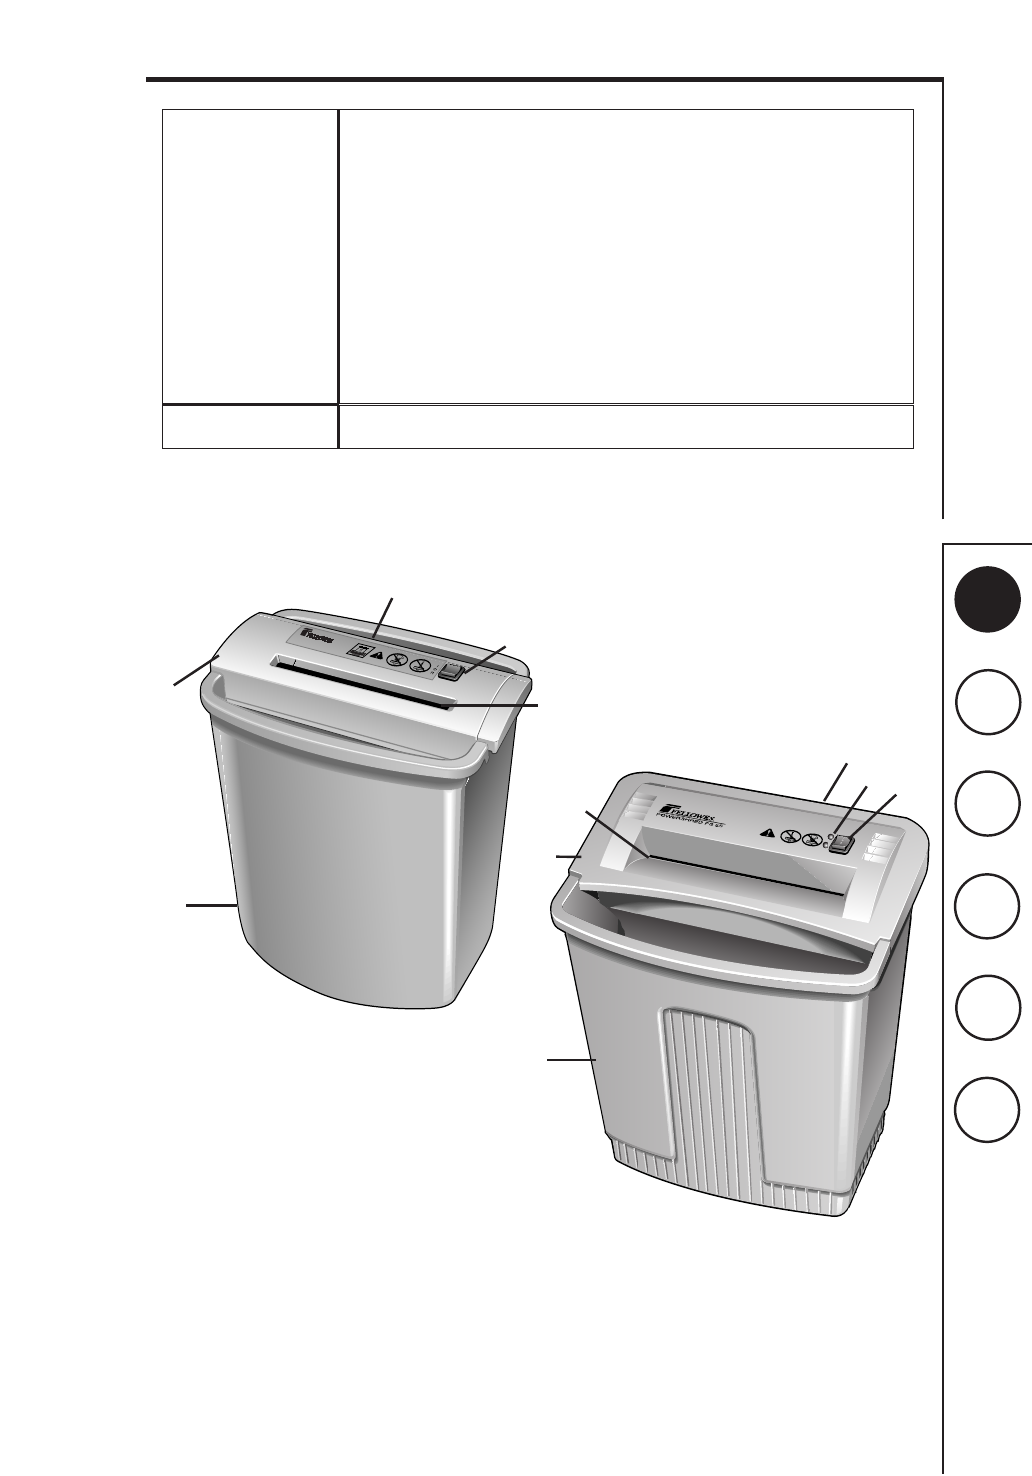 Shredder Replacement Parts : Fellowes paper shredder repair parts diagram pictures to